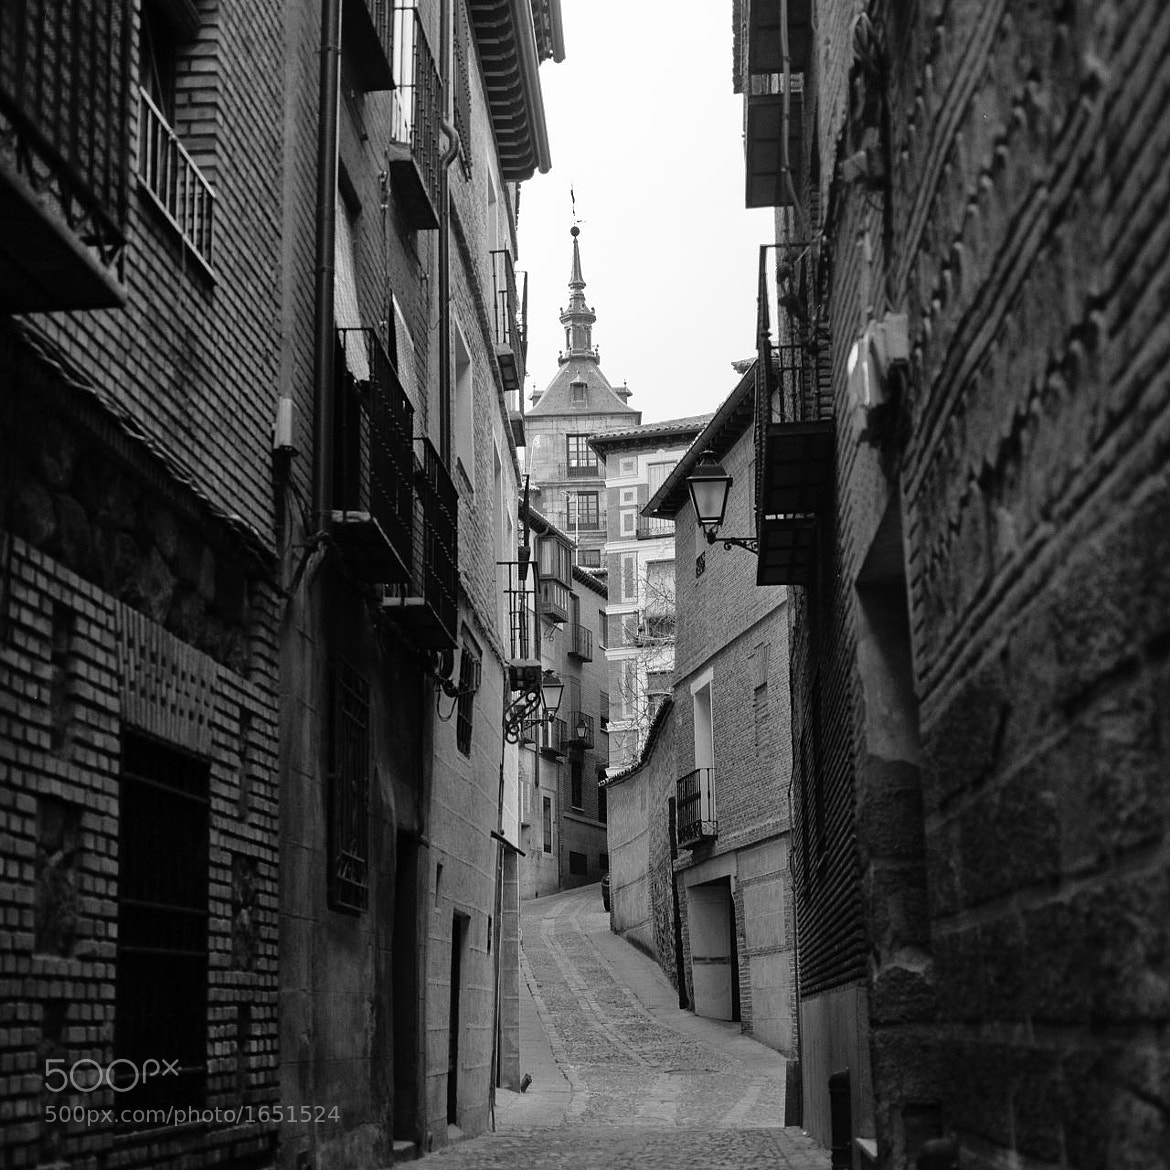 Photograph Callejón de Toledo by Isi Hernández on 500px